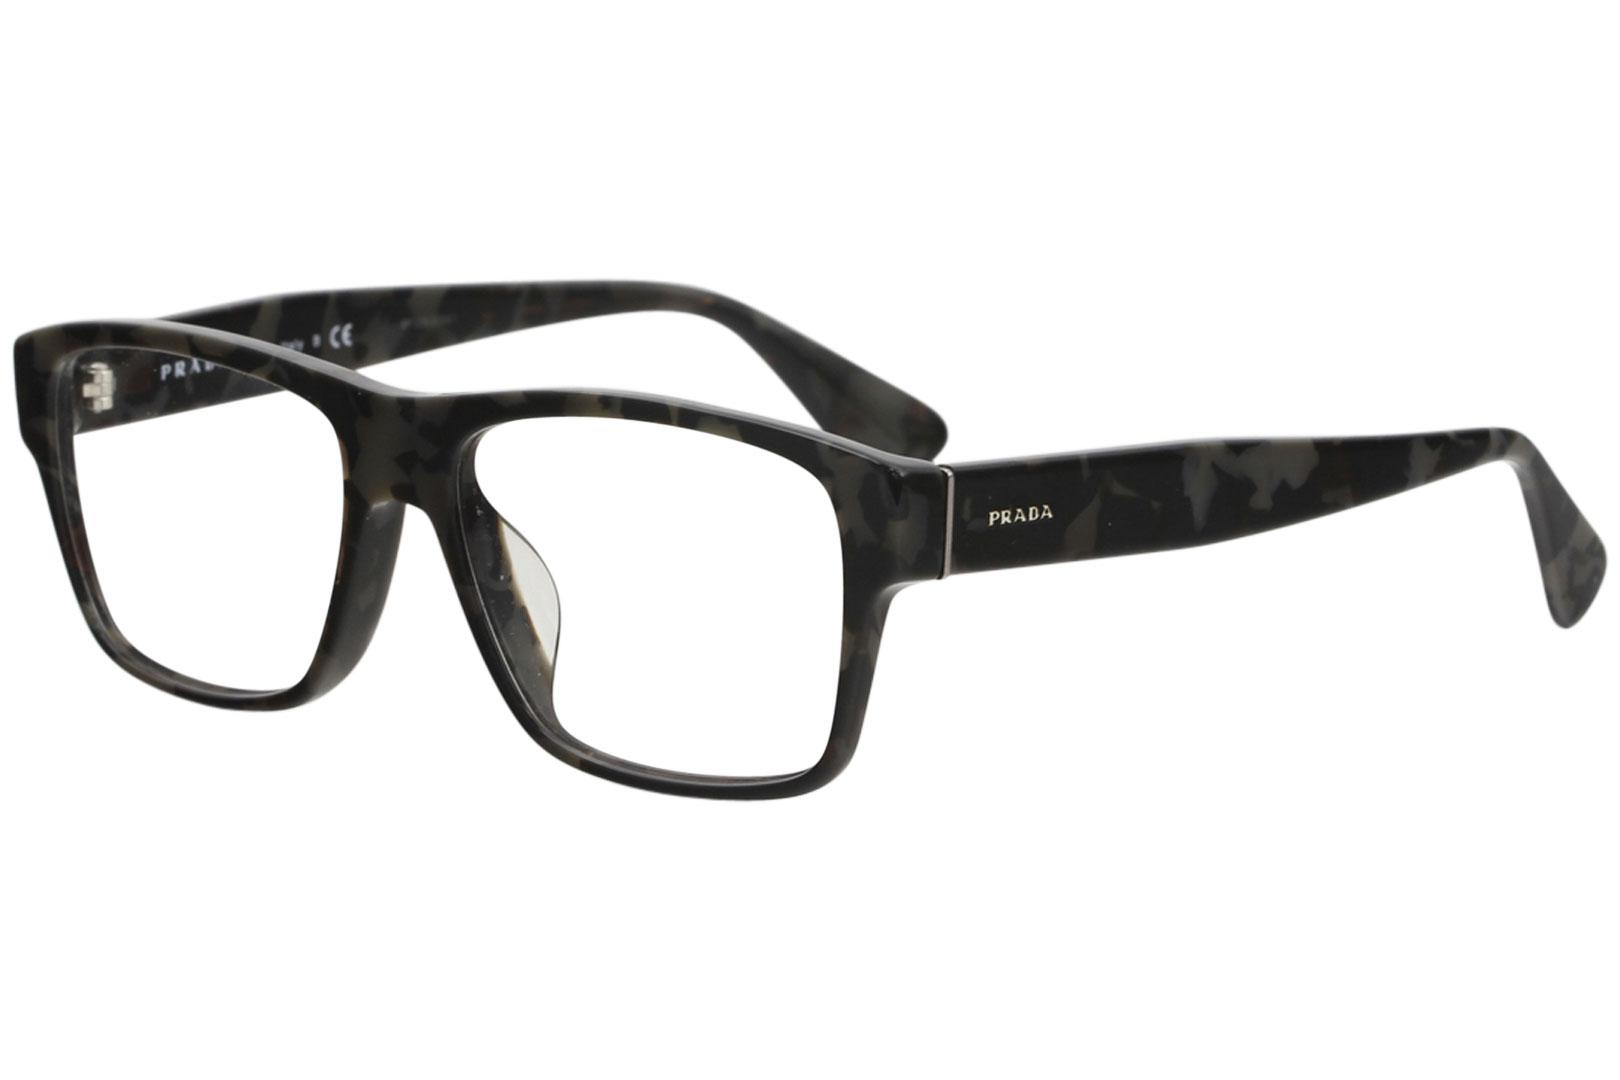 86d484d1413bd Prada Men's Eyeglasses VPR17SF VPR/17/SF Full Rim Optical Frame